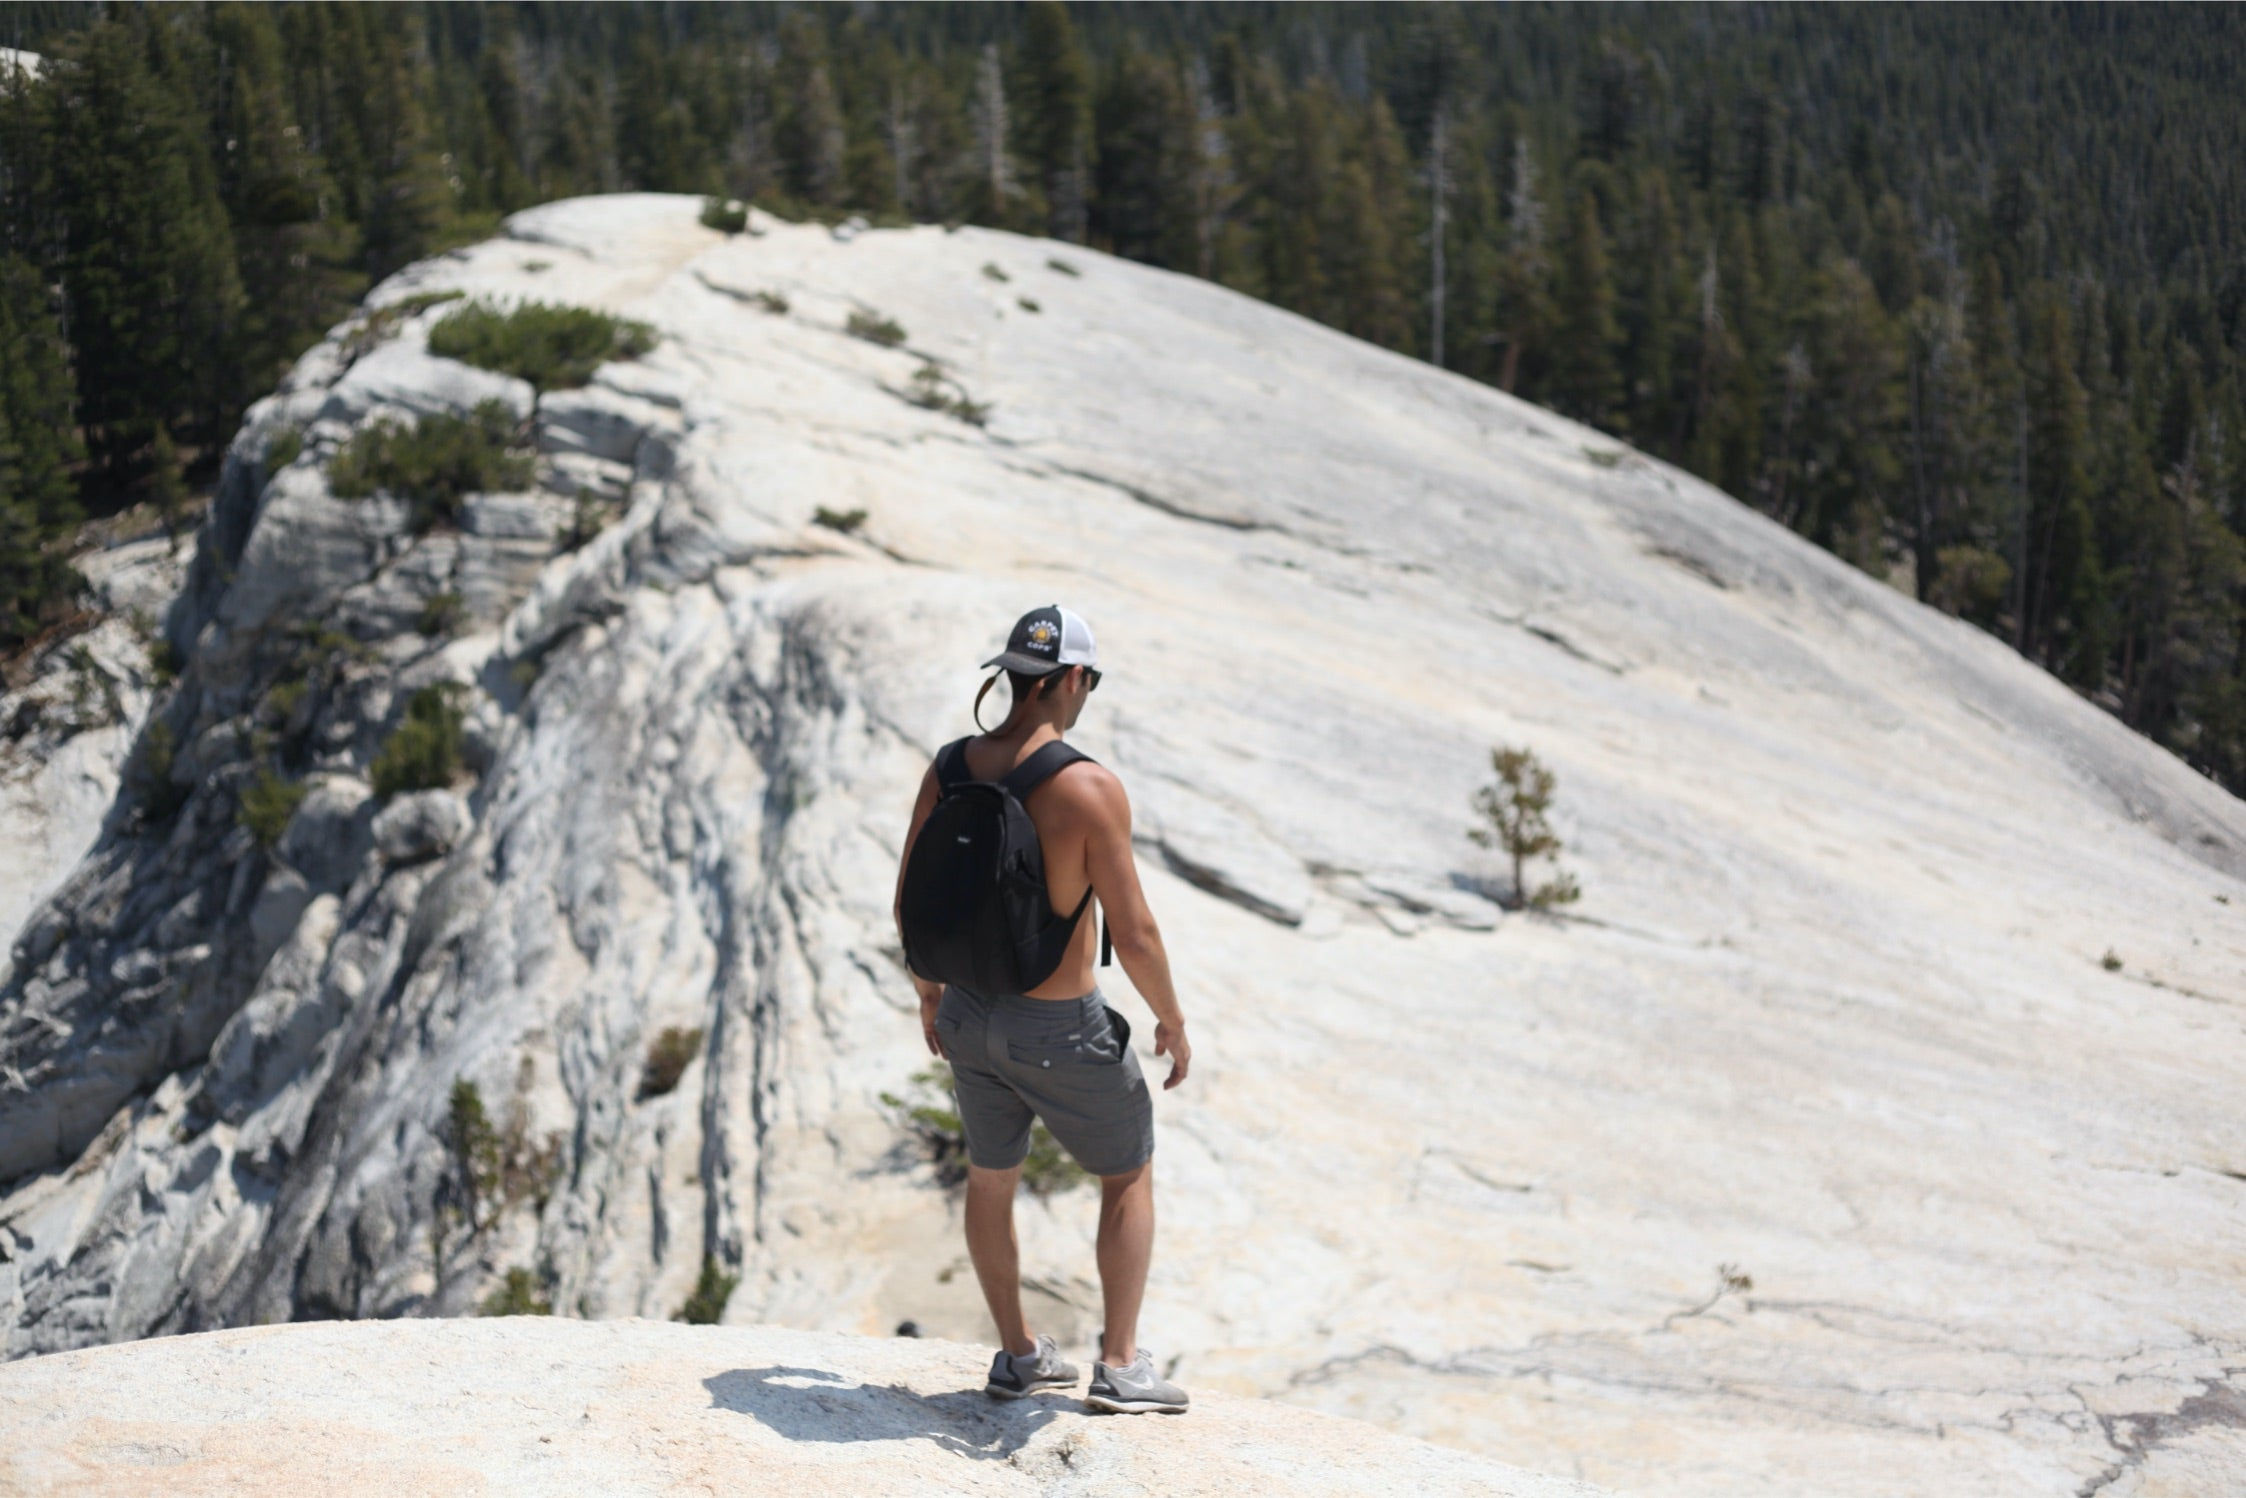 camera strap, hiking in yosemite, sunglass straps, best hikes in yosemite, outdoor blog